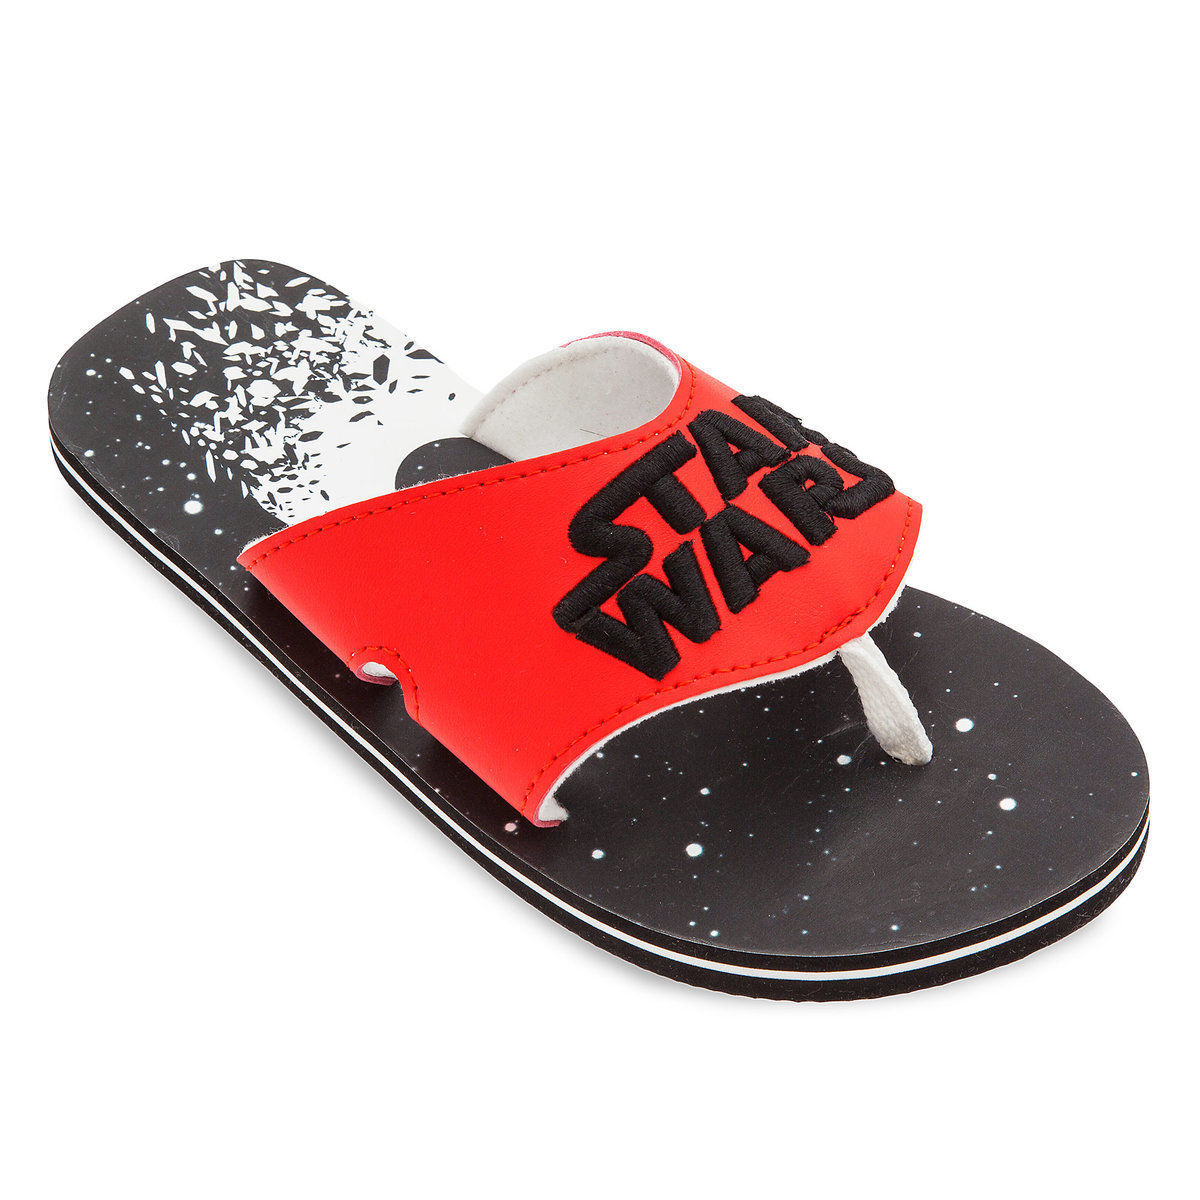 STAR WARS Flip Flops w/Optional Sunglasses Beach Sandals Boys Sz. 11/12 13/1 2/3